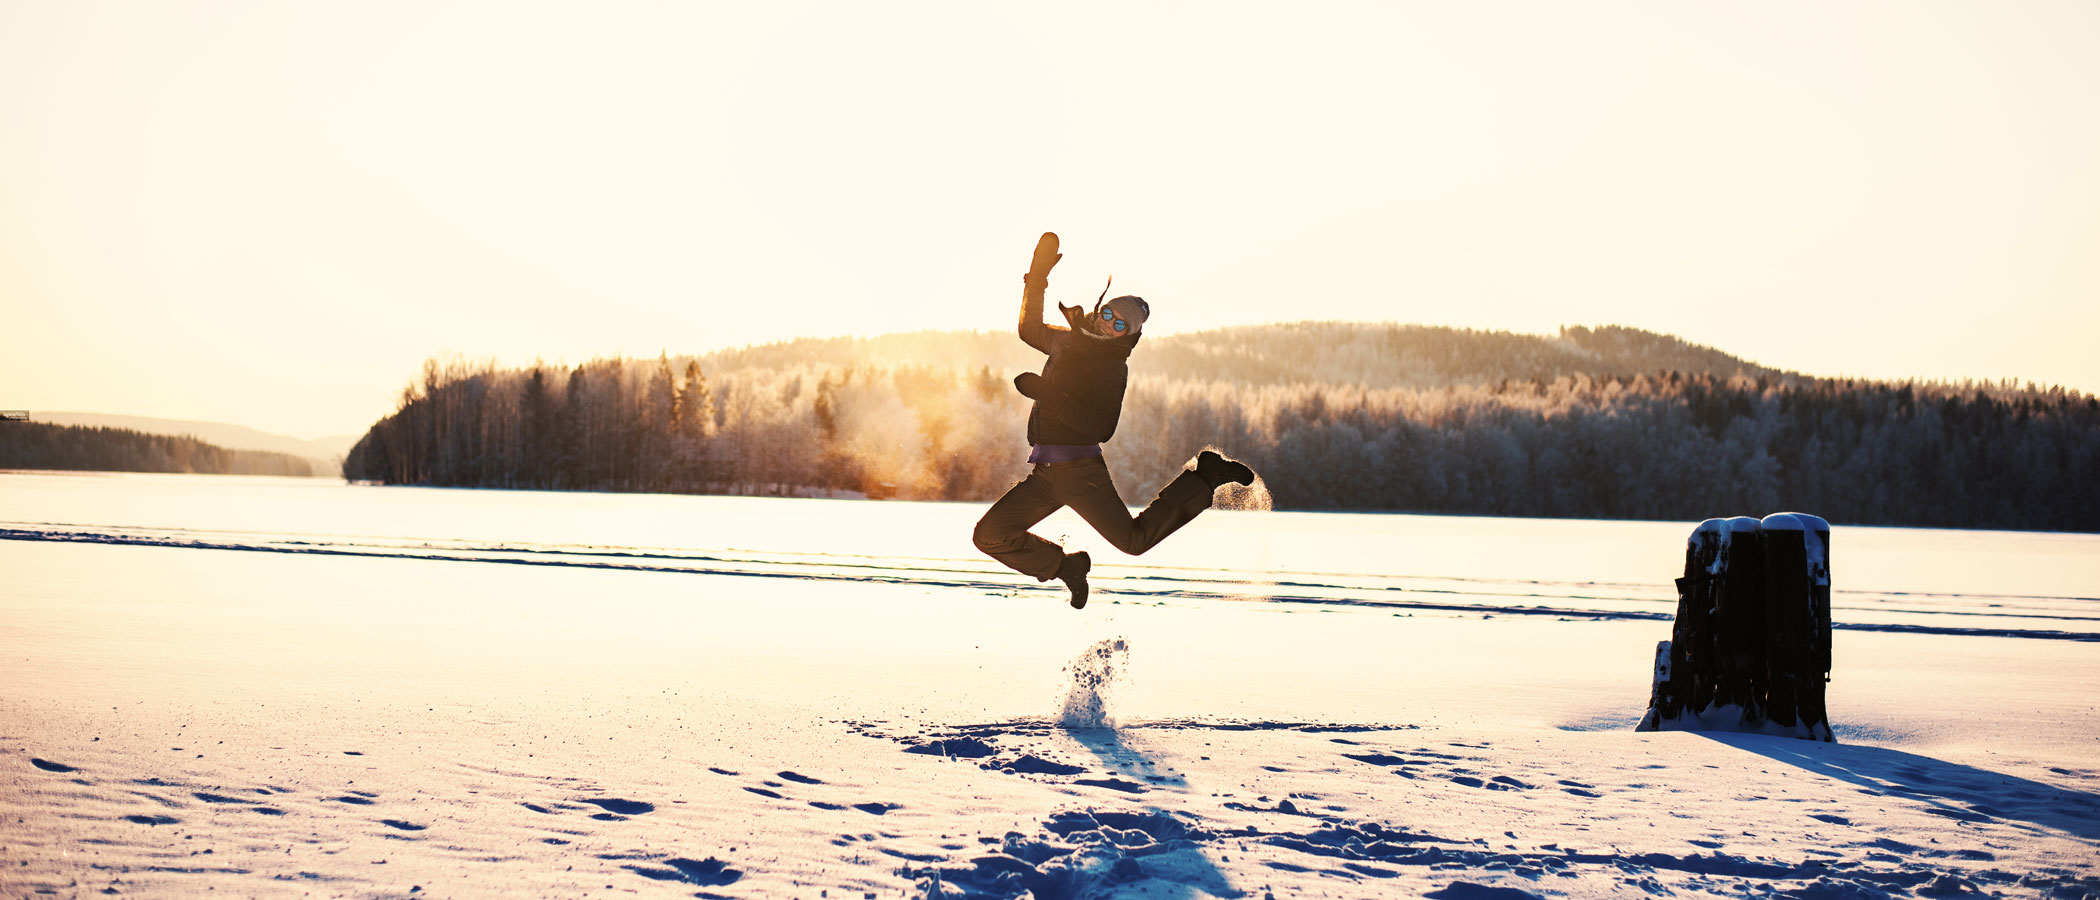 A person jumping in the air in winter